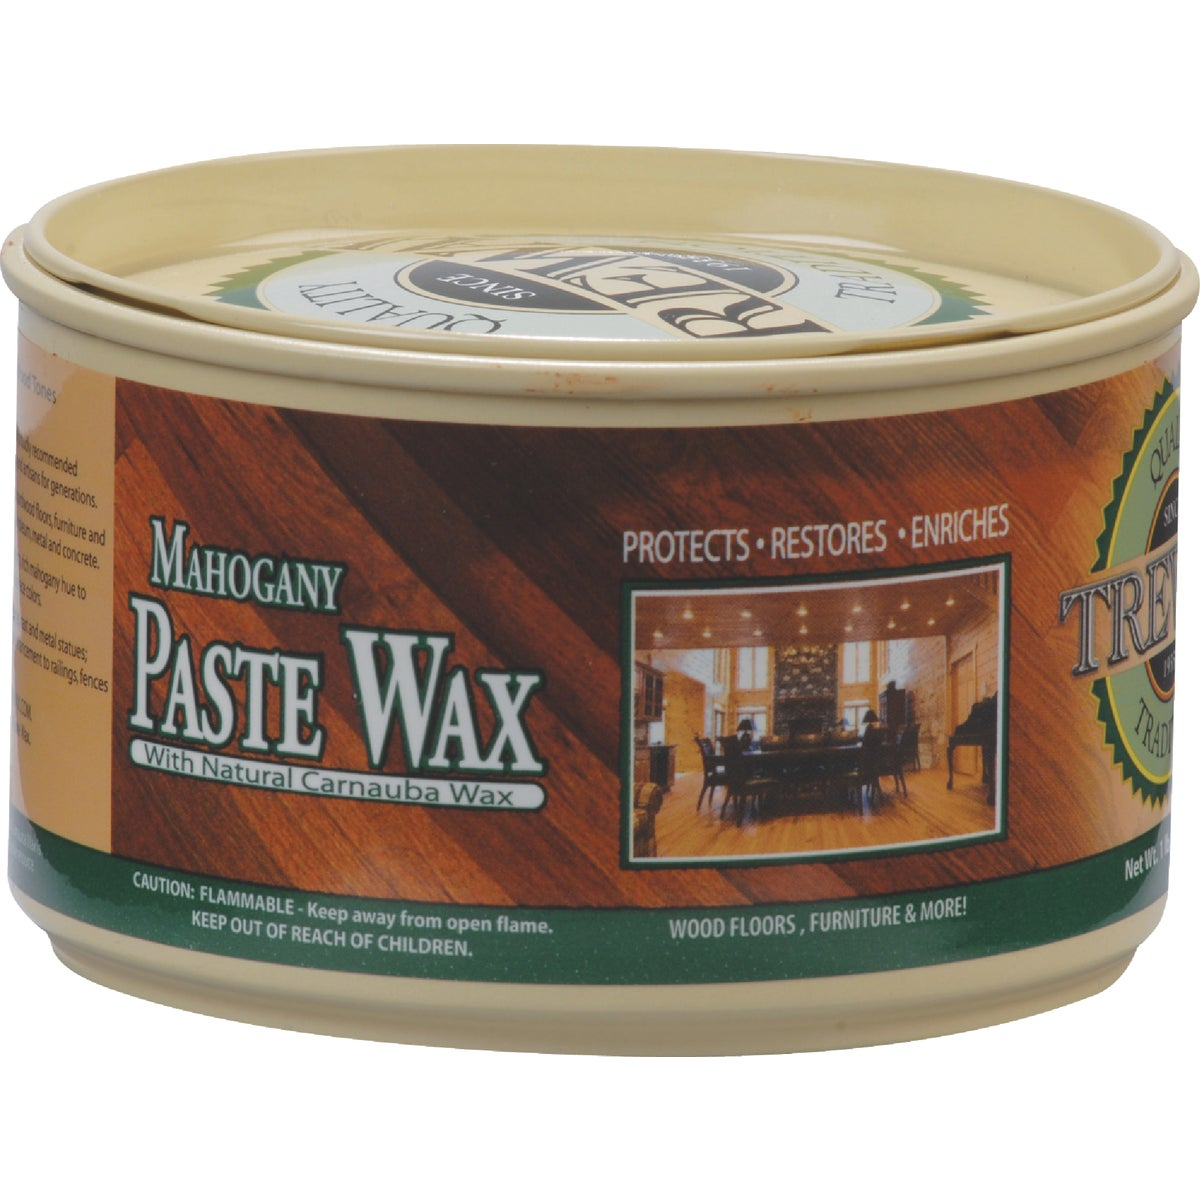 12.35OZ MAHOG PASTE WAX - 887101017-12PK by Beaumont Products